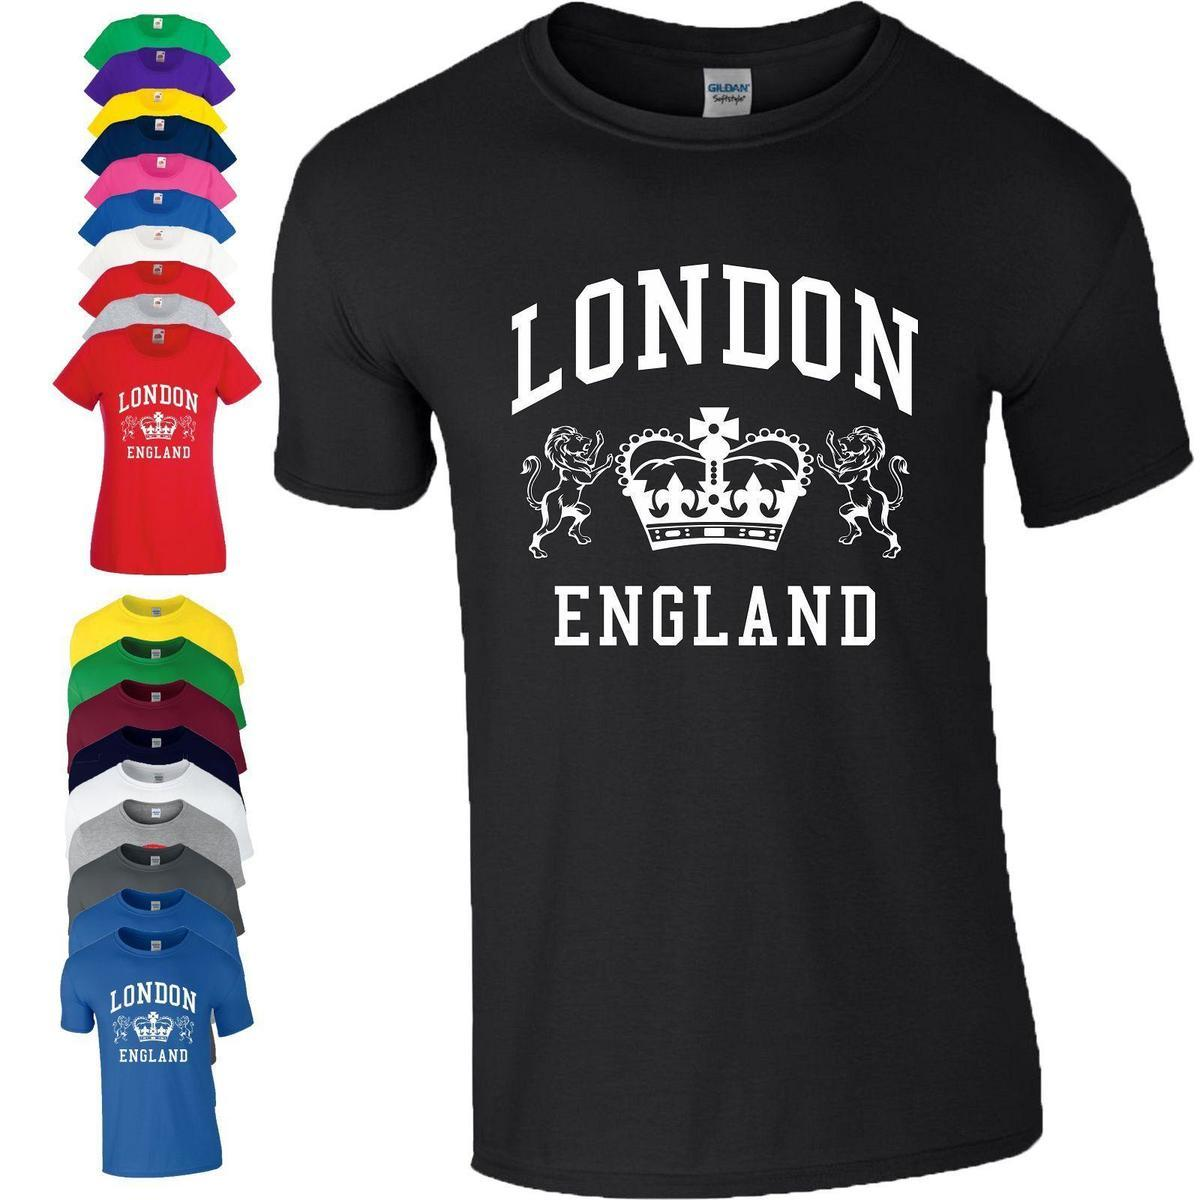 London England T Shirt Novelty Souvenir Tourist Holiday Birthday Gift Men Ladies Popular Funny It Shirts From Amesion2506 1208